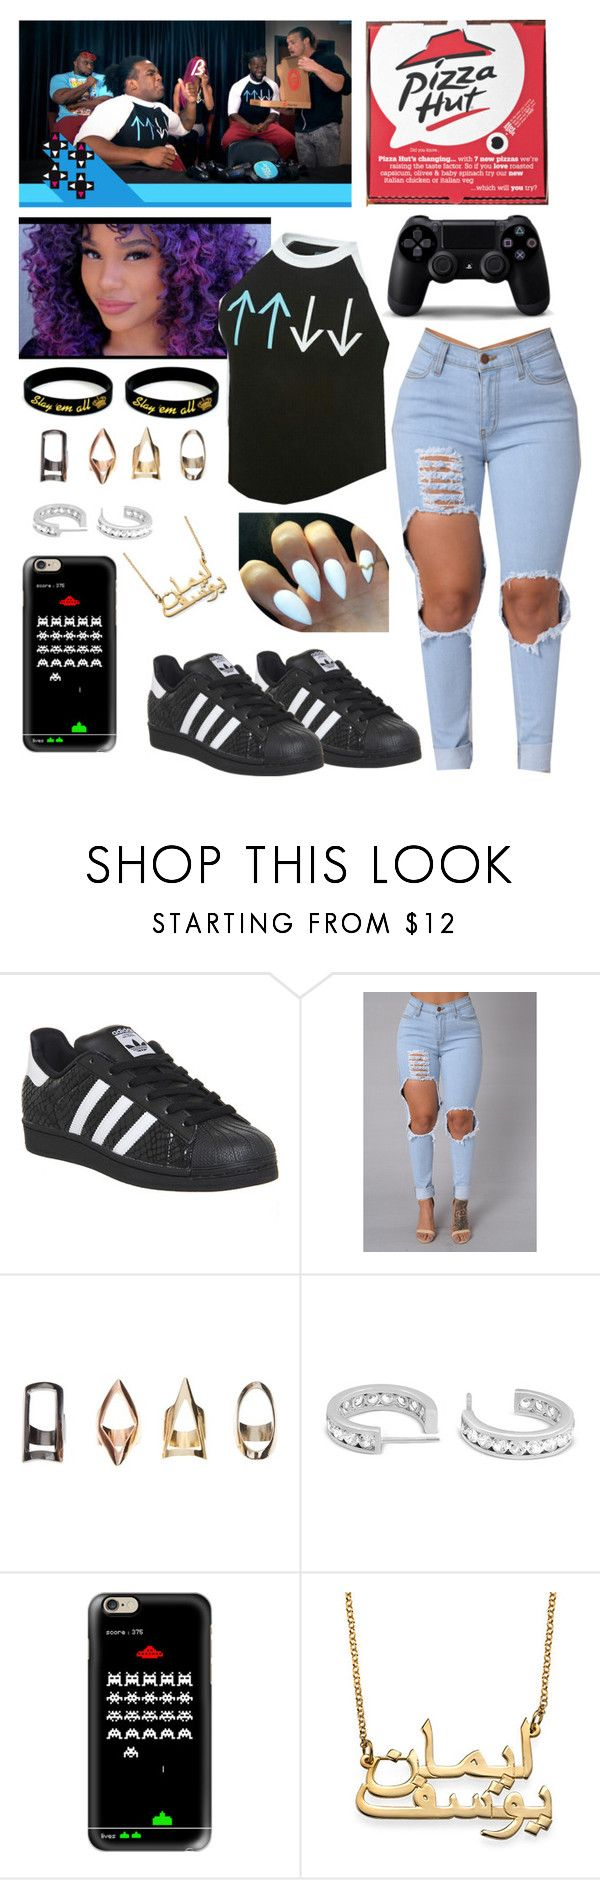 """"""" Brittany UpUpDownDown with Dolph Ziggler, Big E langston, Kofi Kingston and Austin Creed ( Xavier Woods )"""" by queenofwrestling ❤ liked on Polyvore featuring adidas and Casetify"""